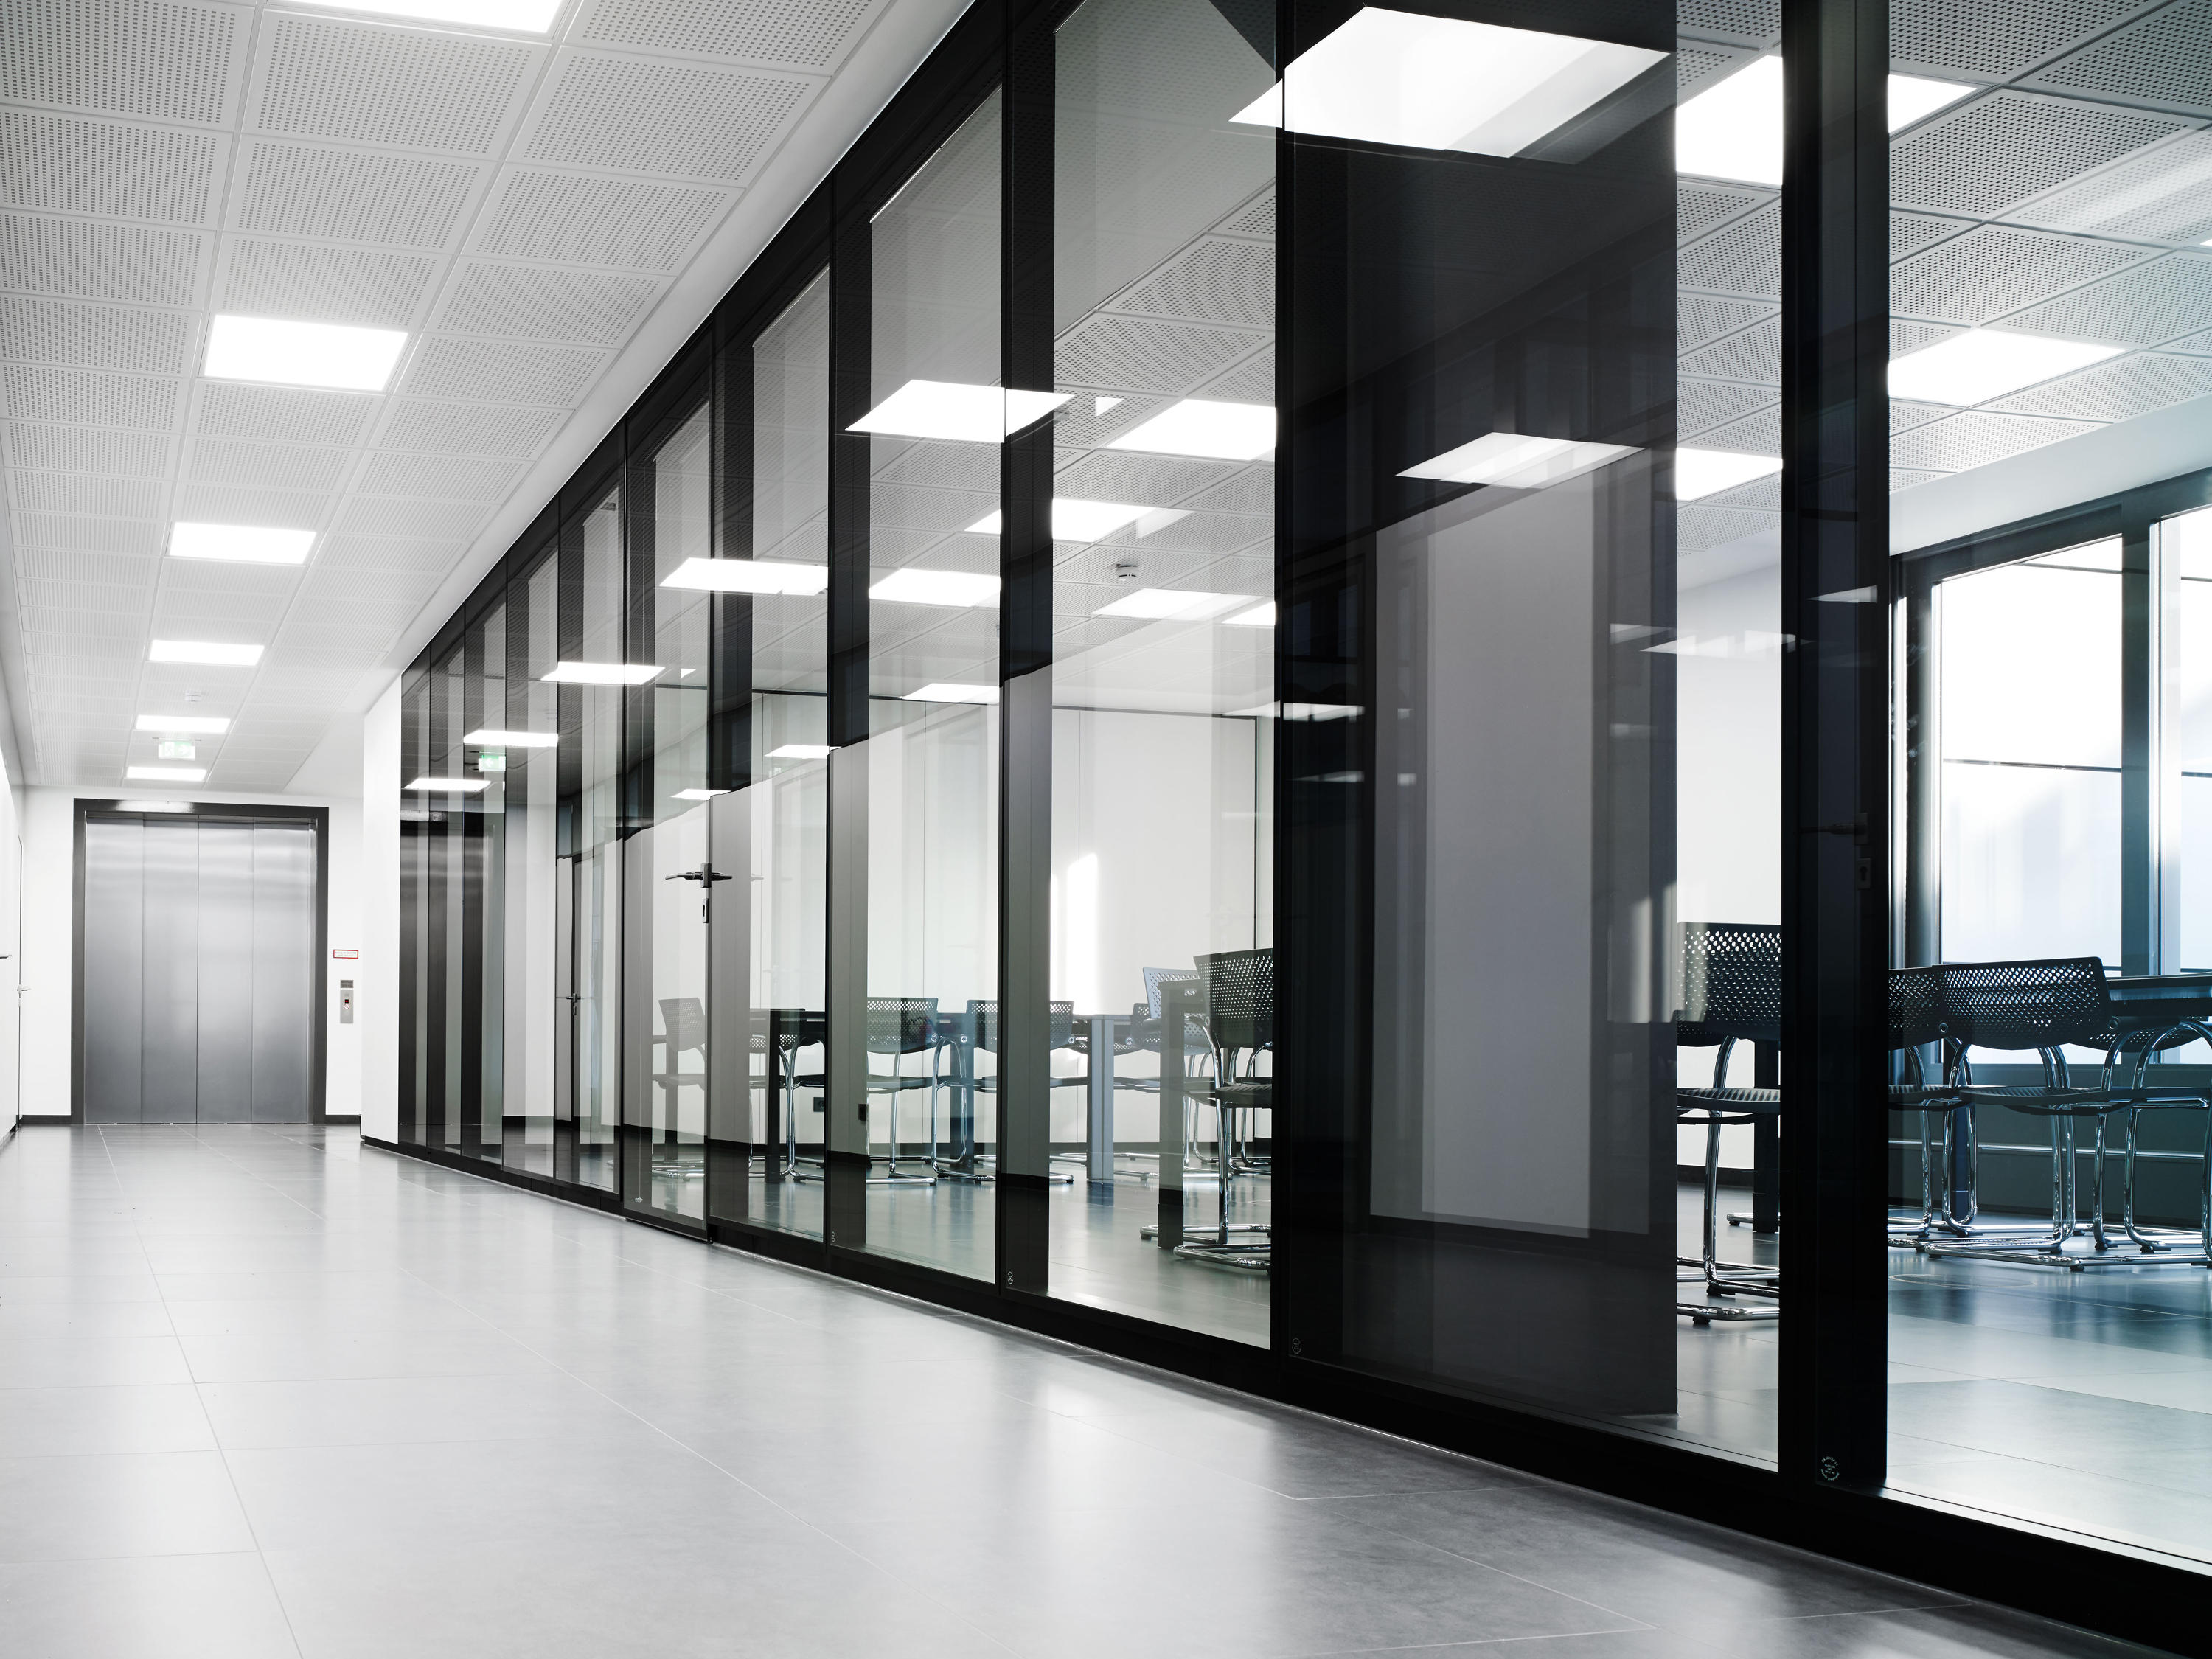 Structural Glazing Product : Structural glazing noise absorbing glass from intek